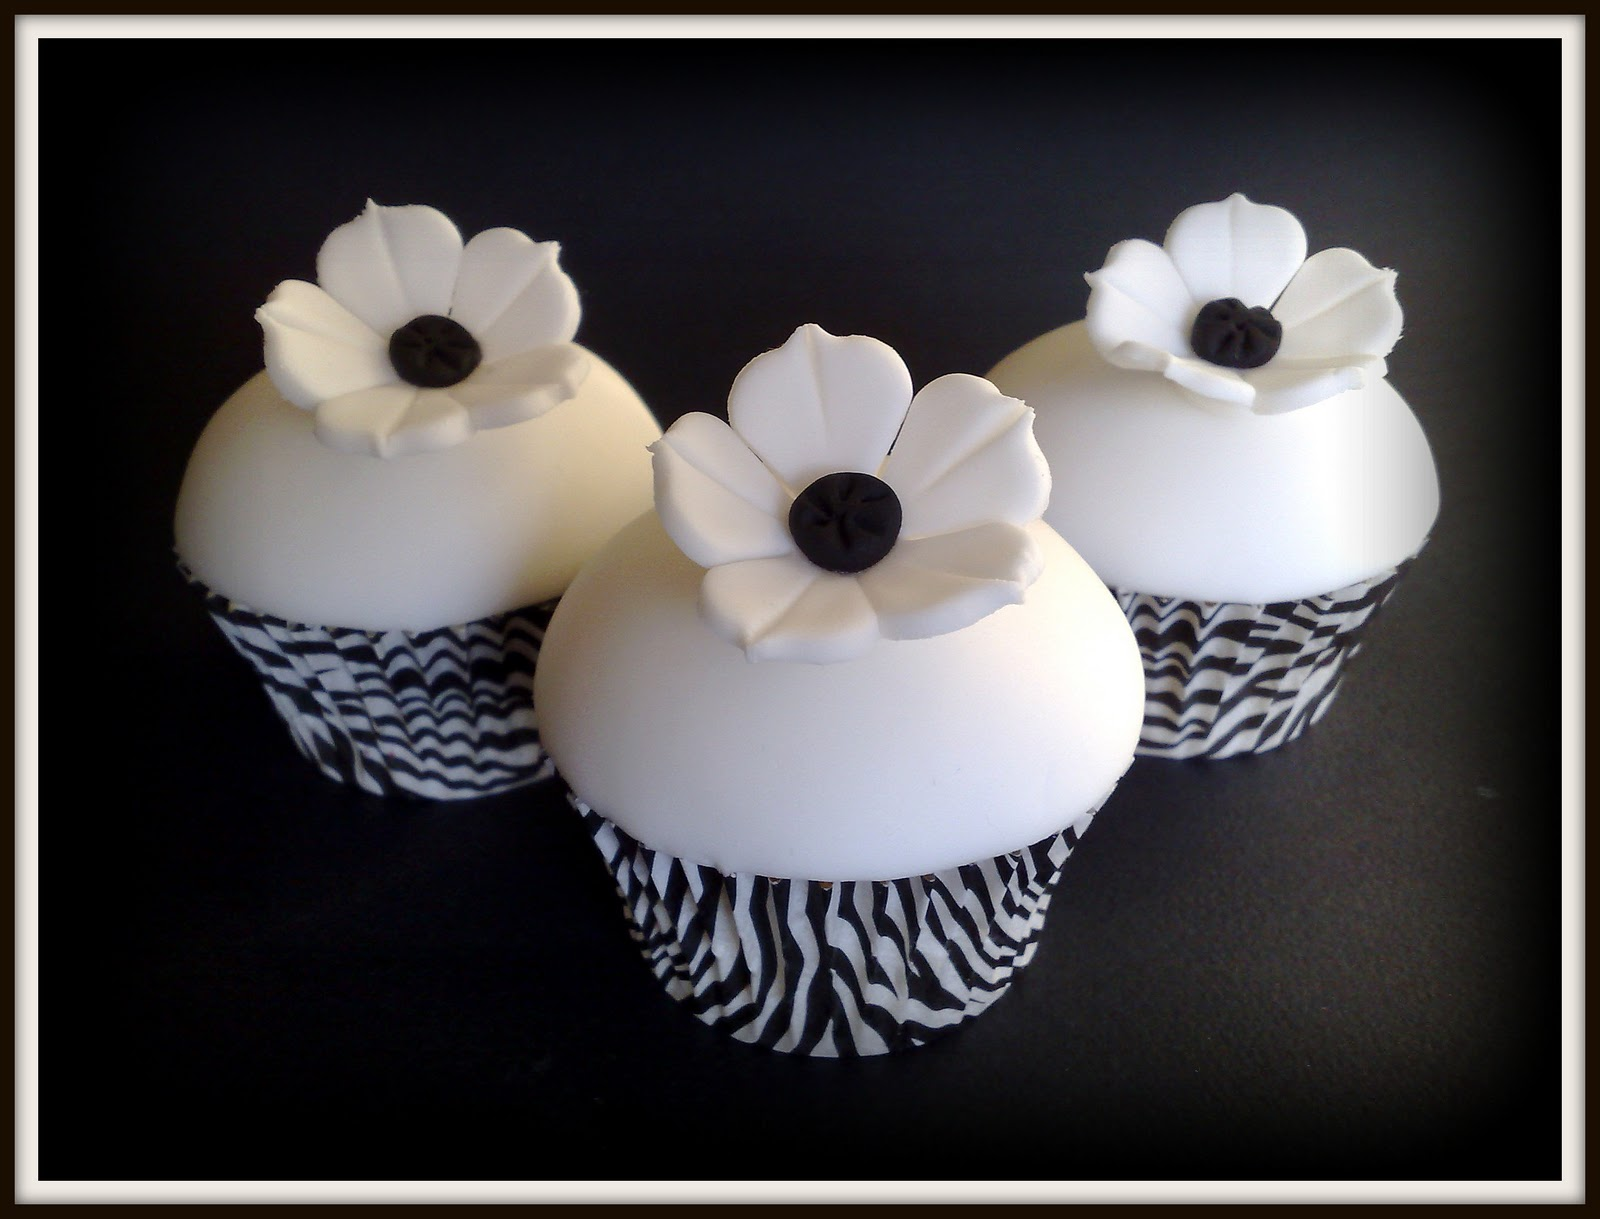 Black And White Cupcake Images : Small Things Iced: Black & White Cupcakes